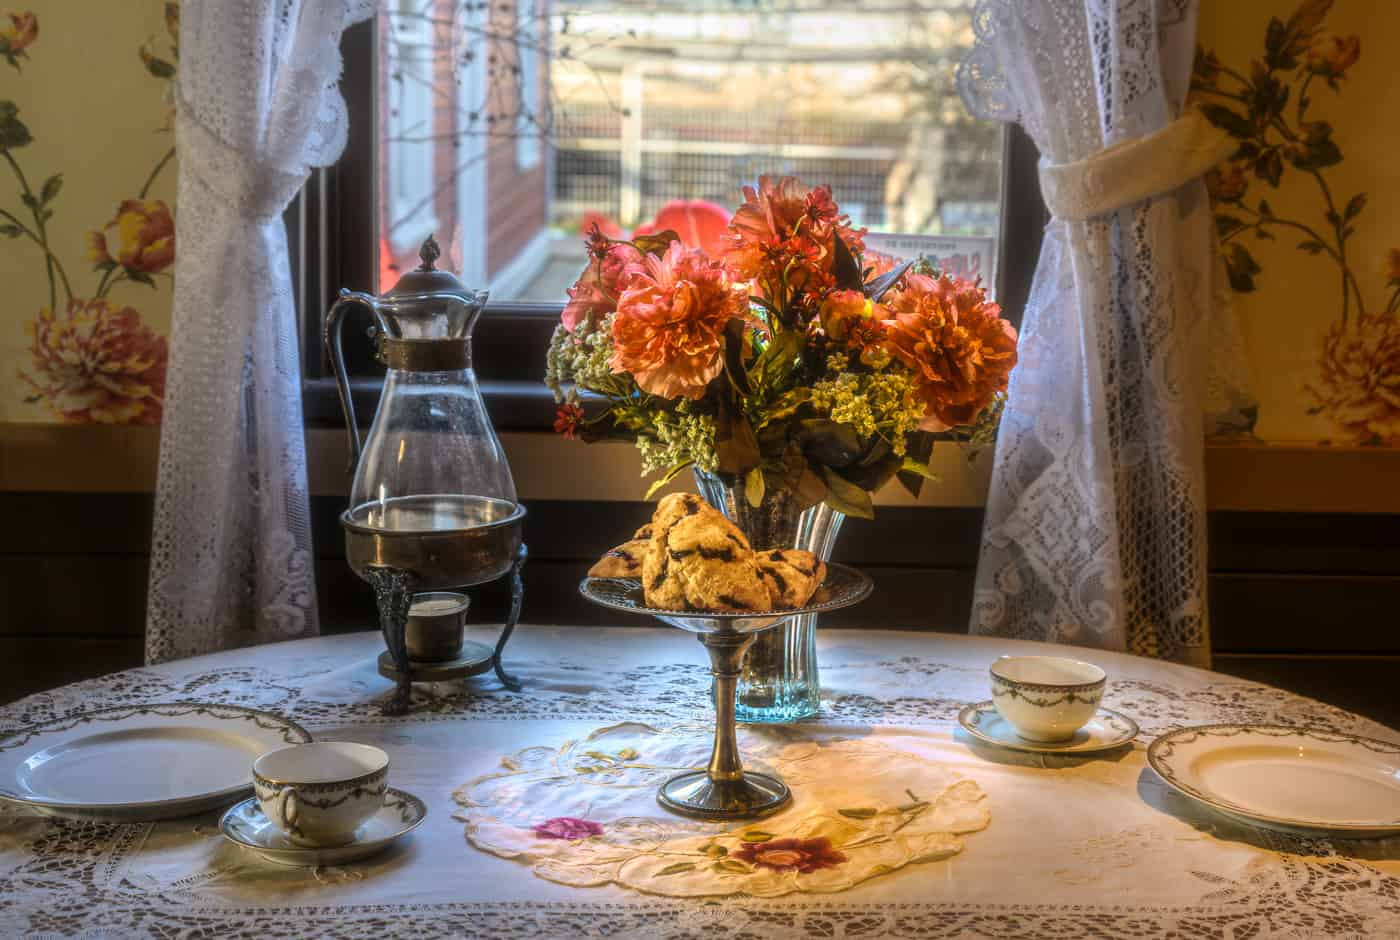 Table For Two by Marlene Reimer